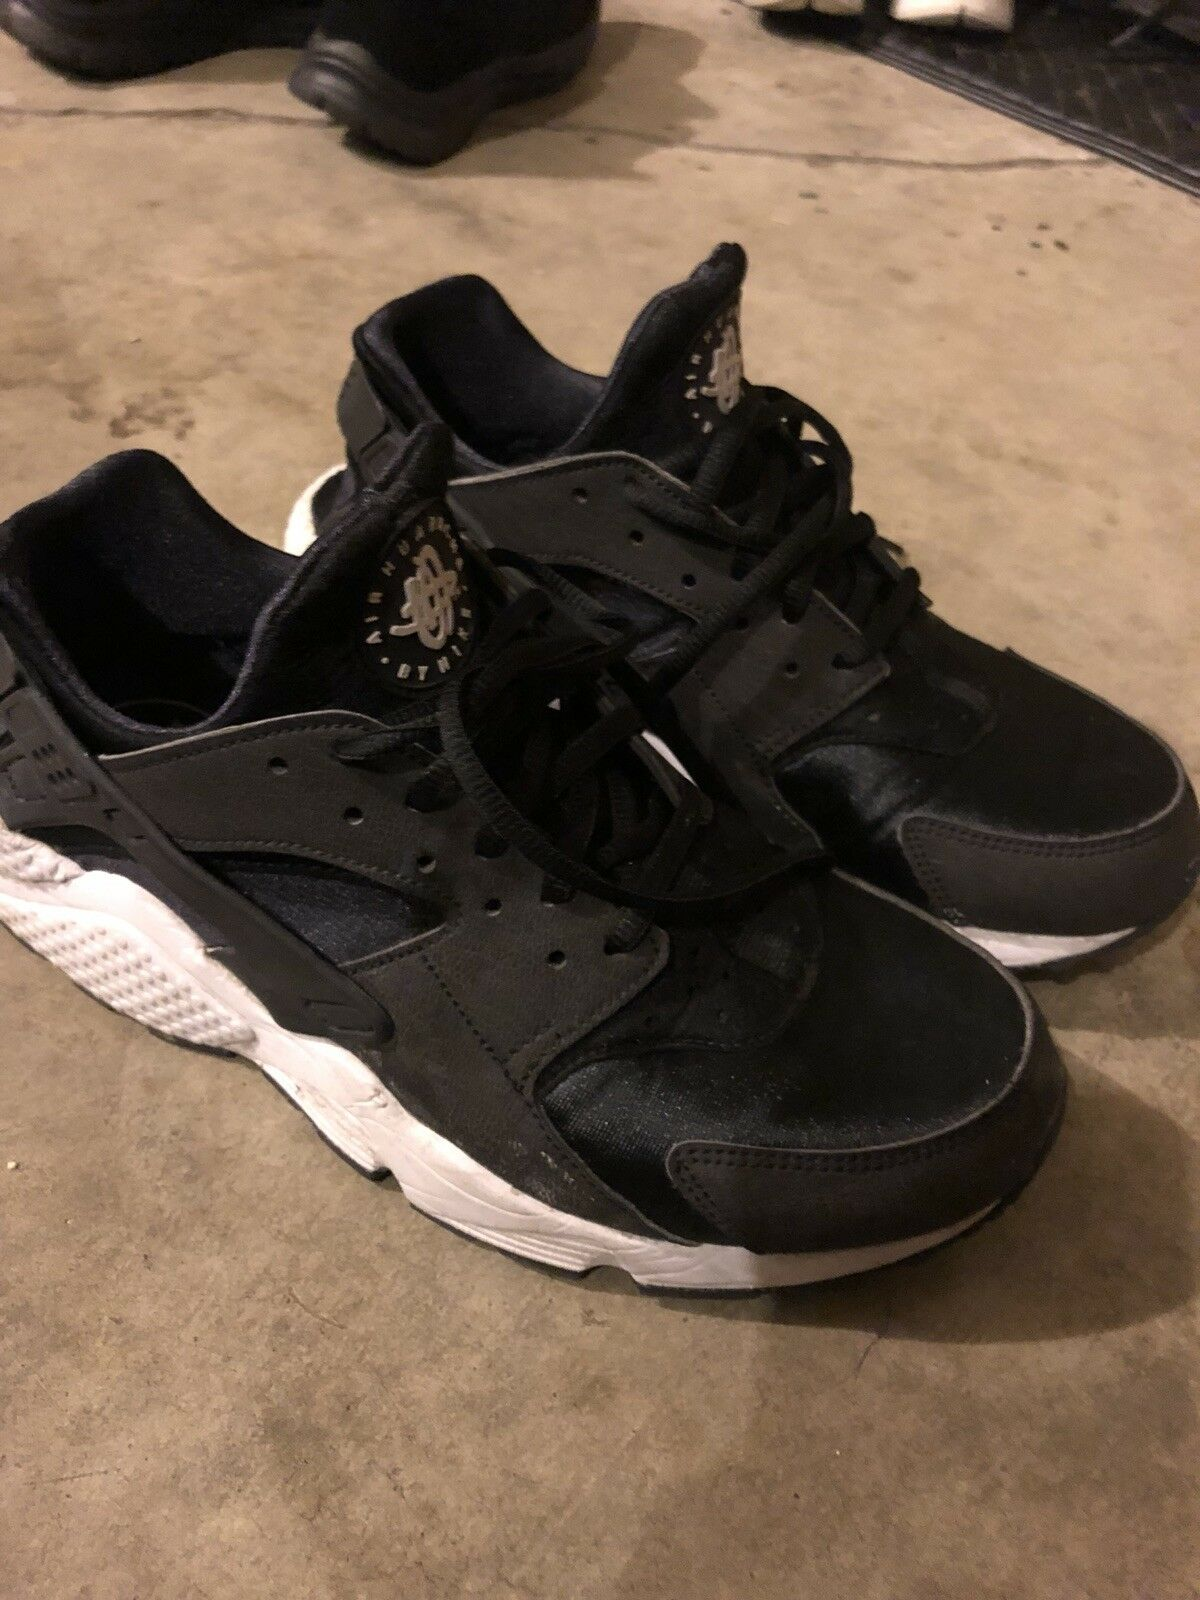 Nike Air Huarache Ultra Black Black Black White   Size 8 mens   size 9.5 womens f379a2